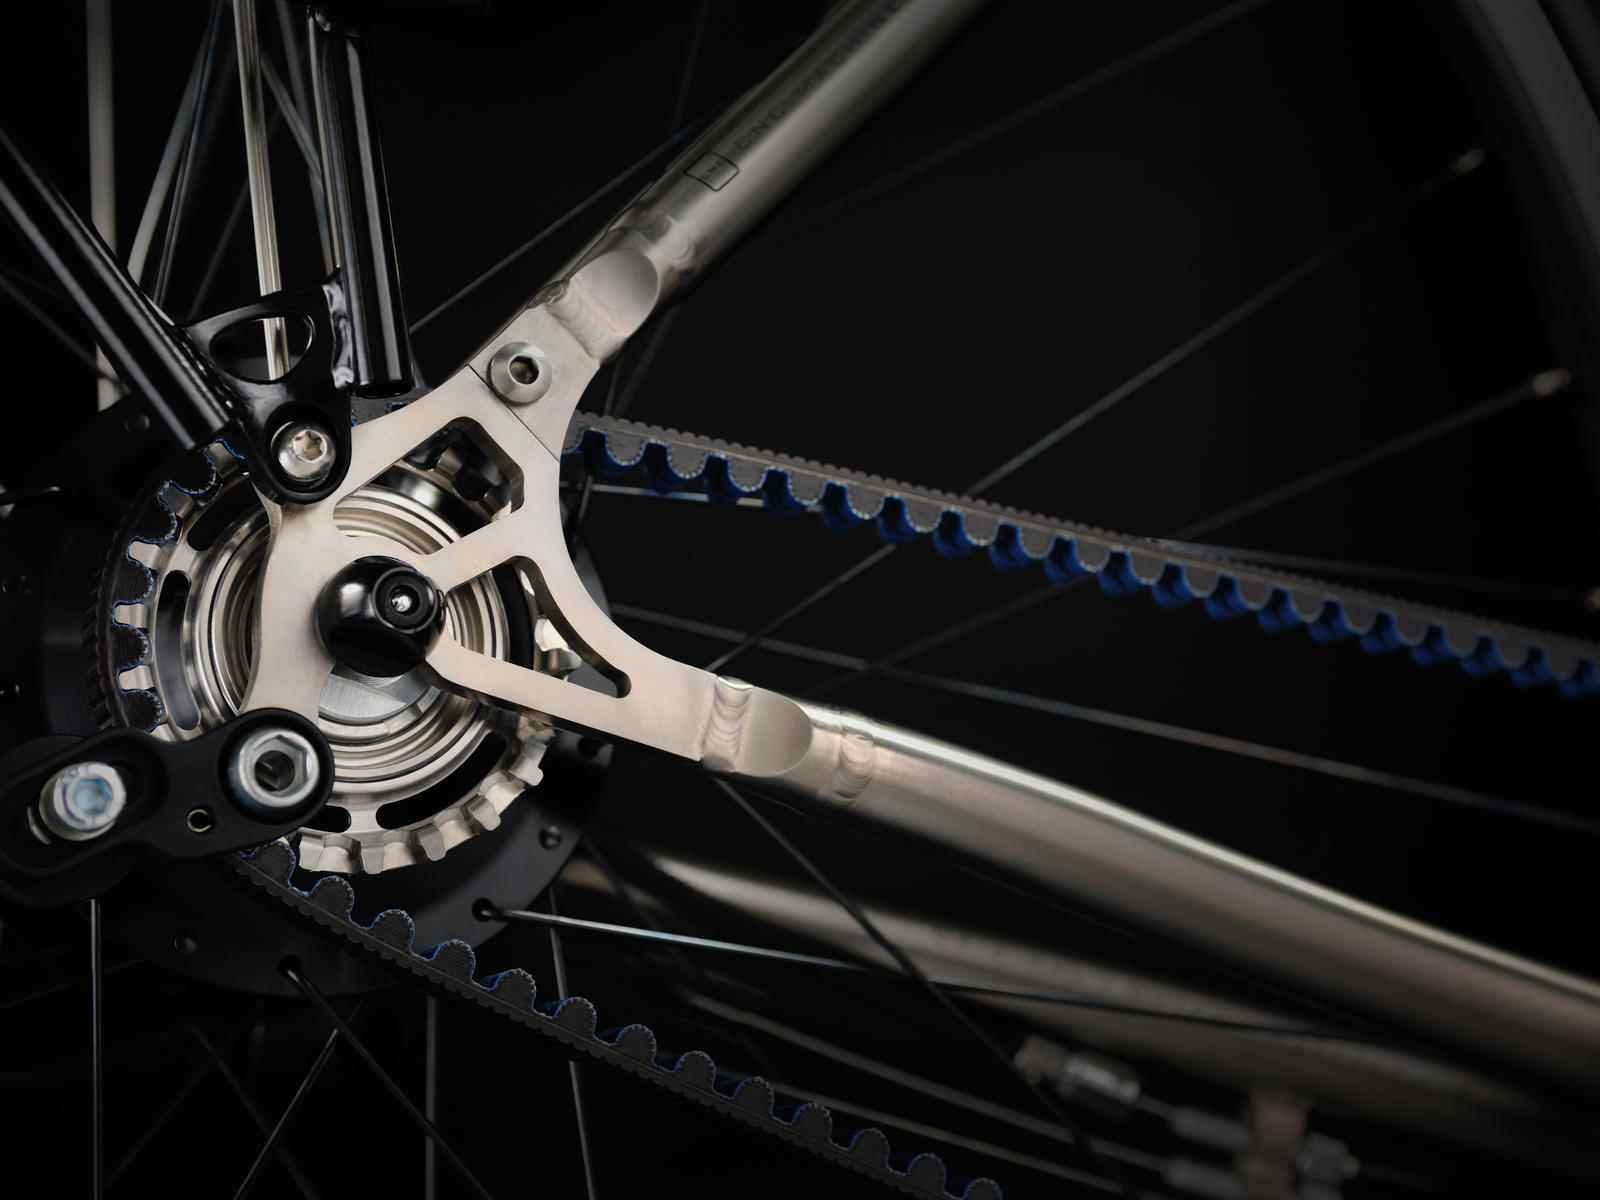 Van Nicholas Amazon Rohloff Titanium CNC Machined Dropout